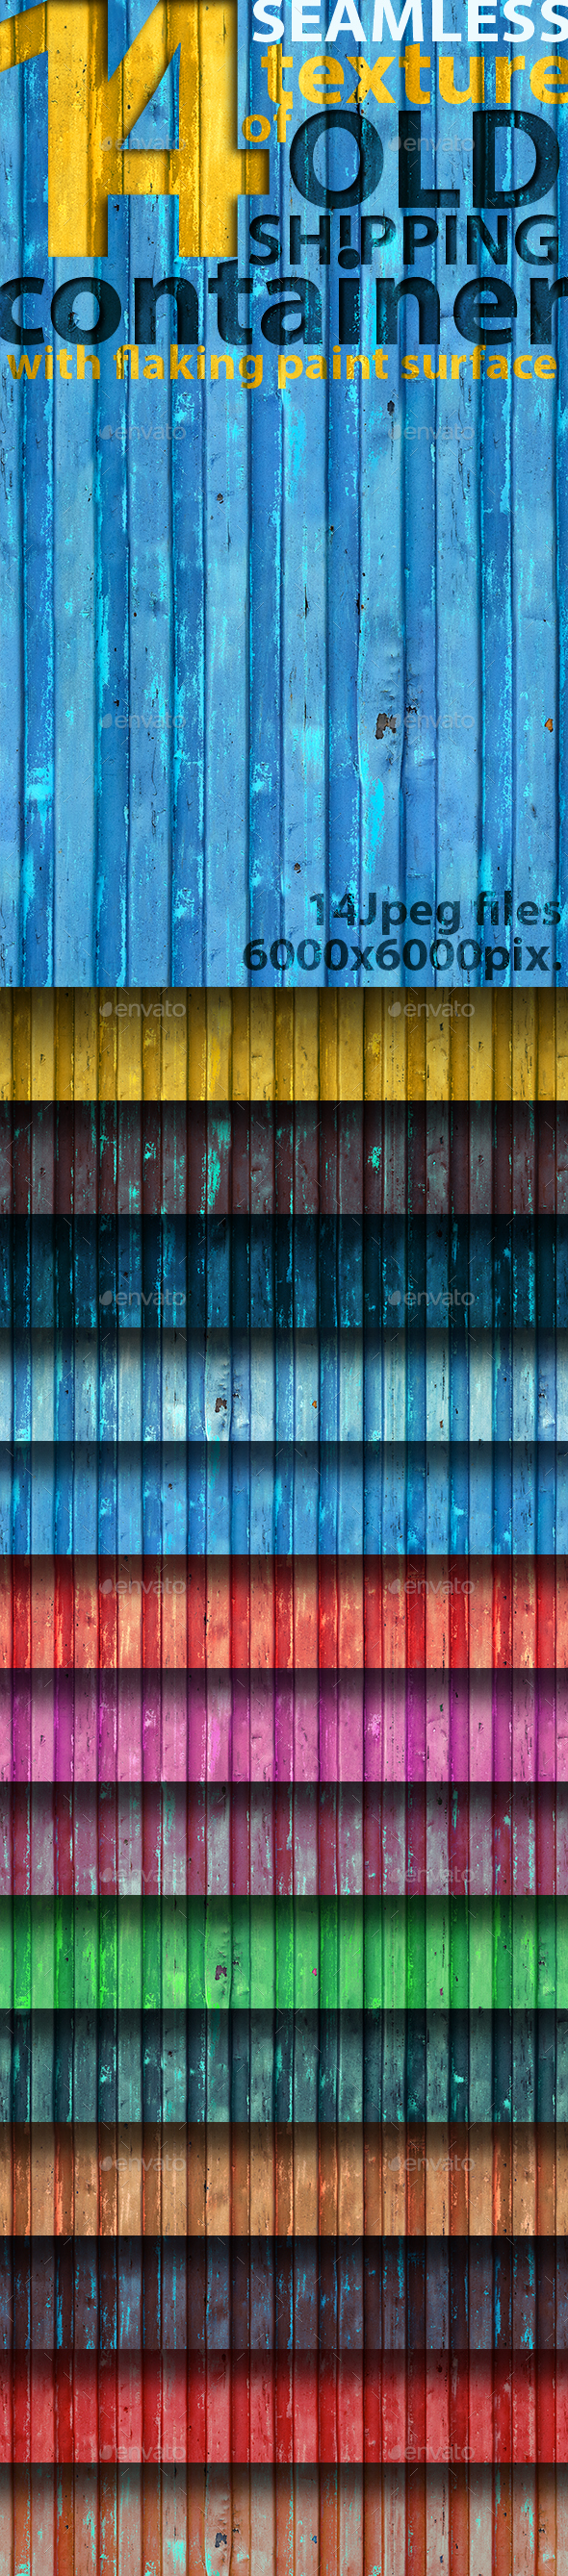 Seamless Textures of Shipping Container - Metal Textures